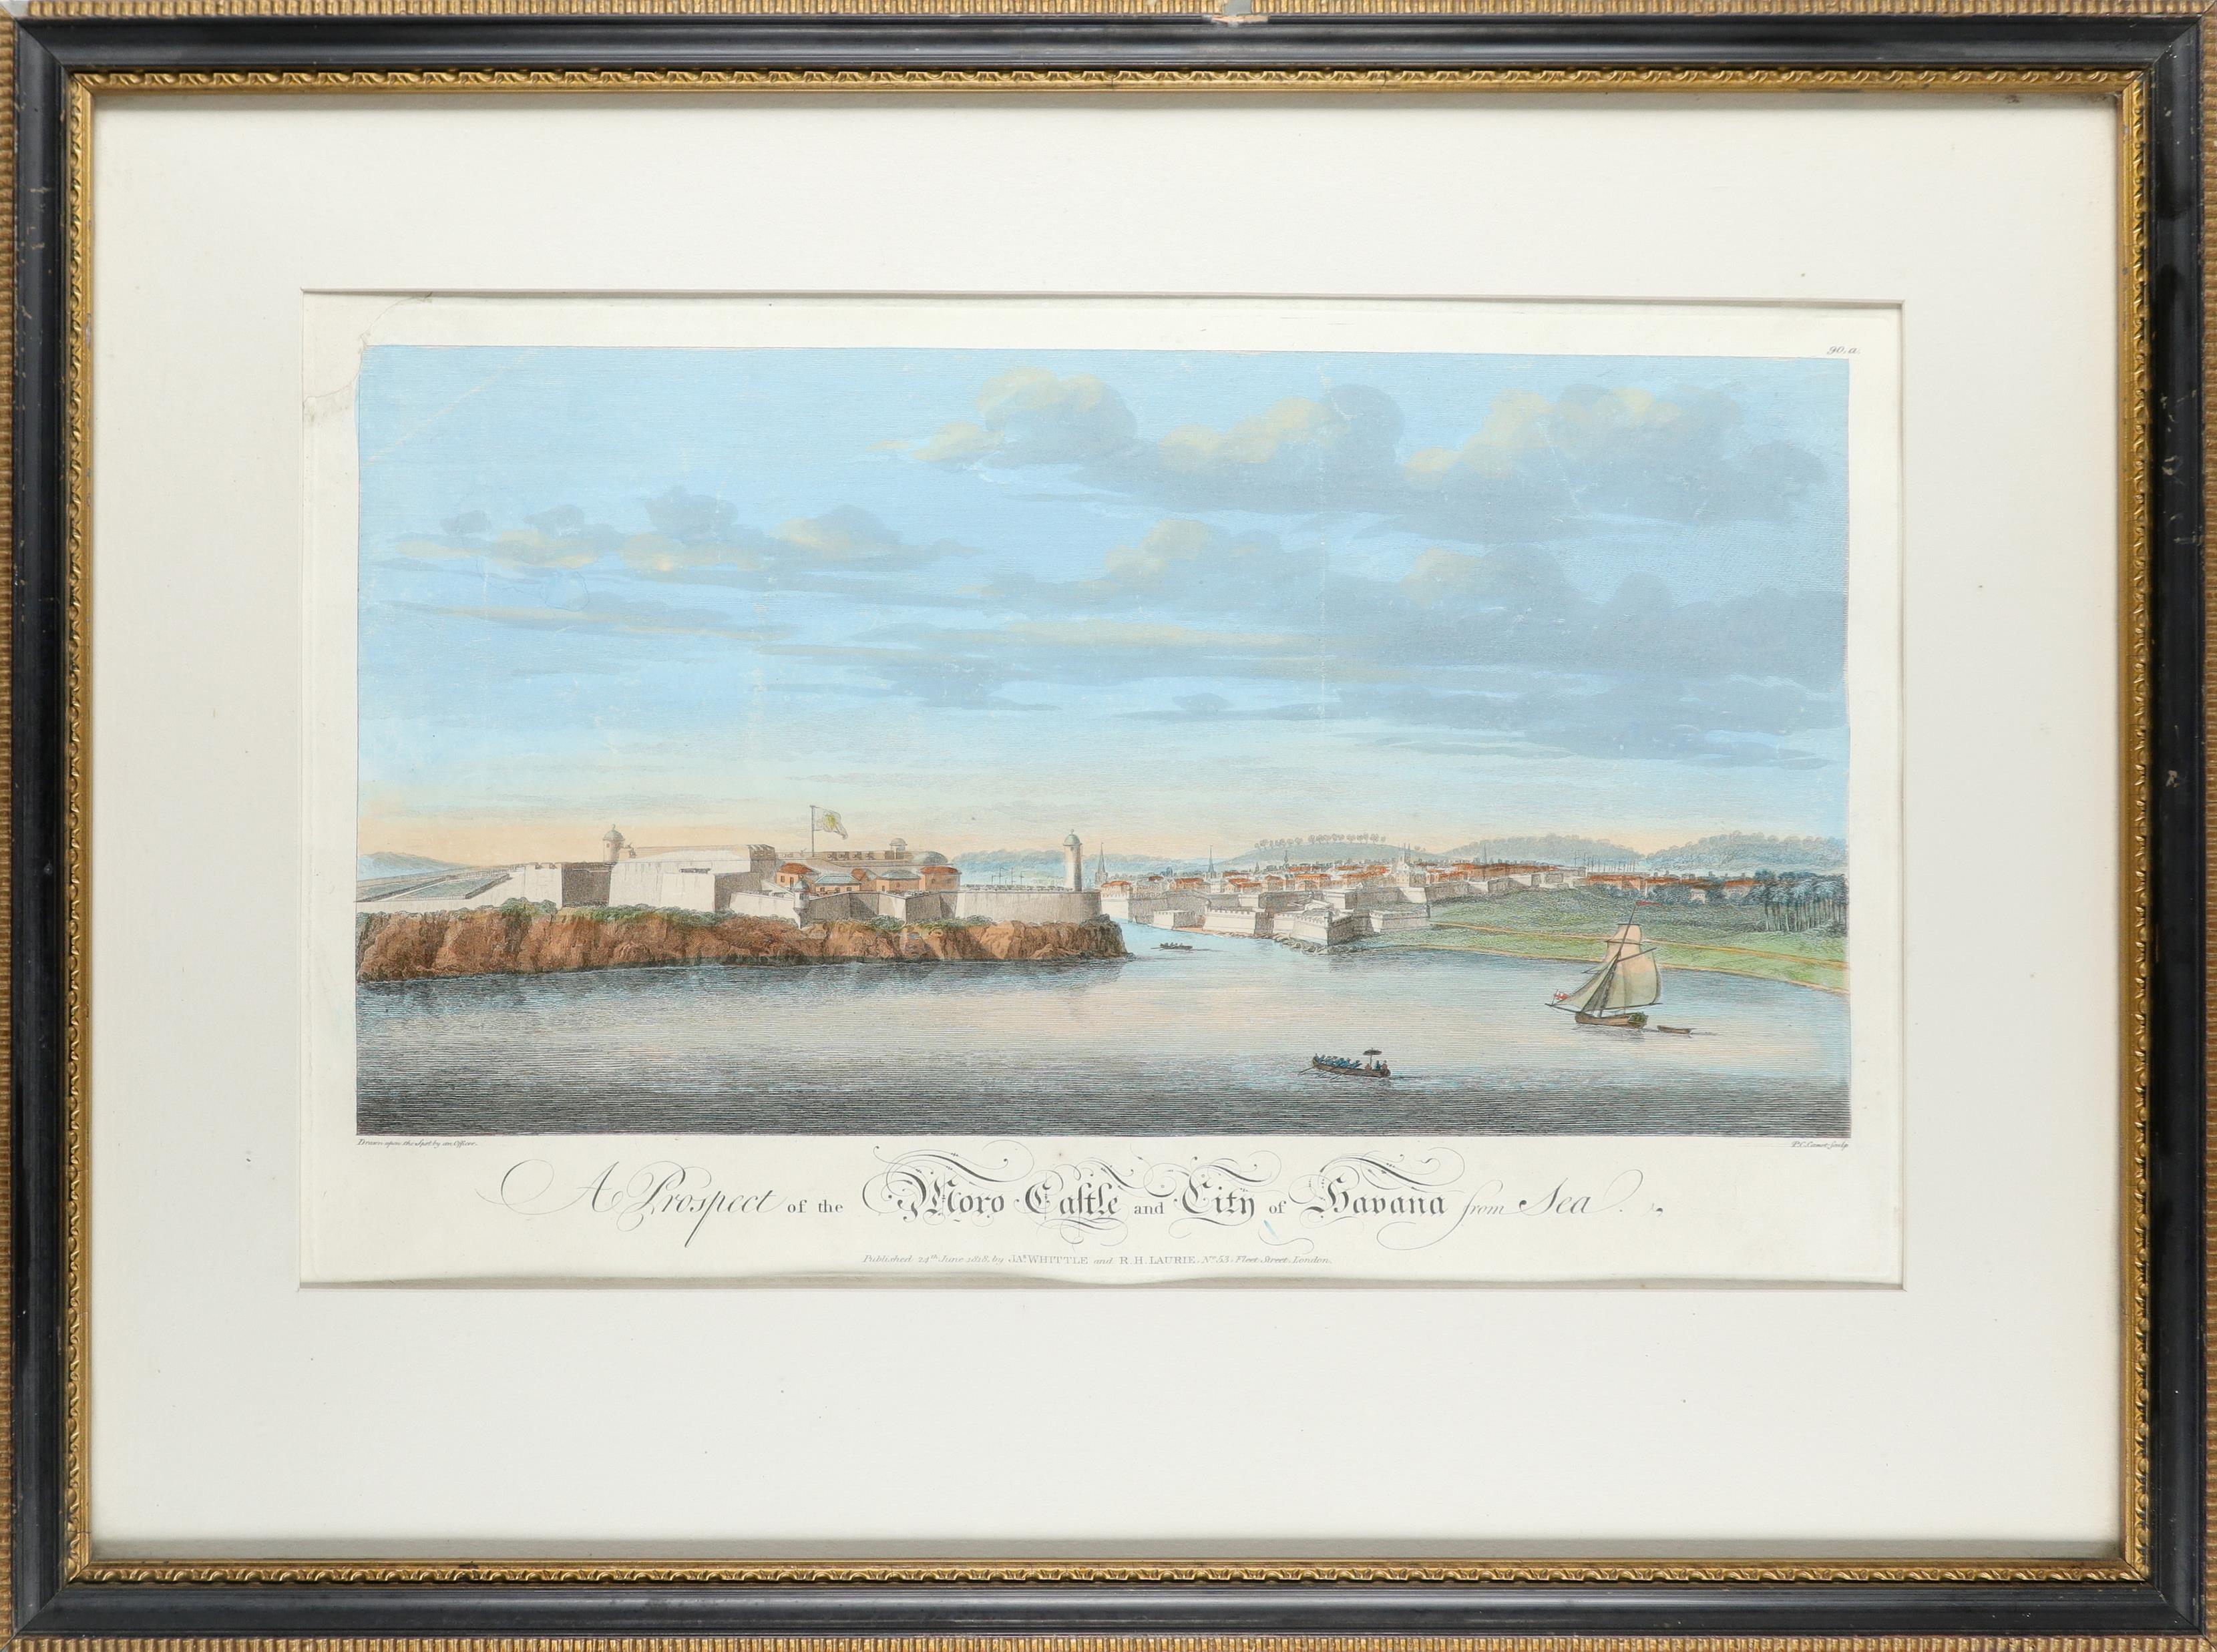 John Carwitham (act. 1723-1741) A South-East View of the City of Boston in North America Engraving - Image 8 of 9